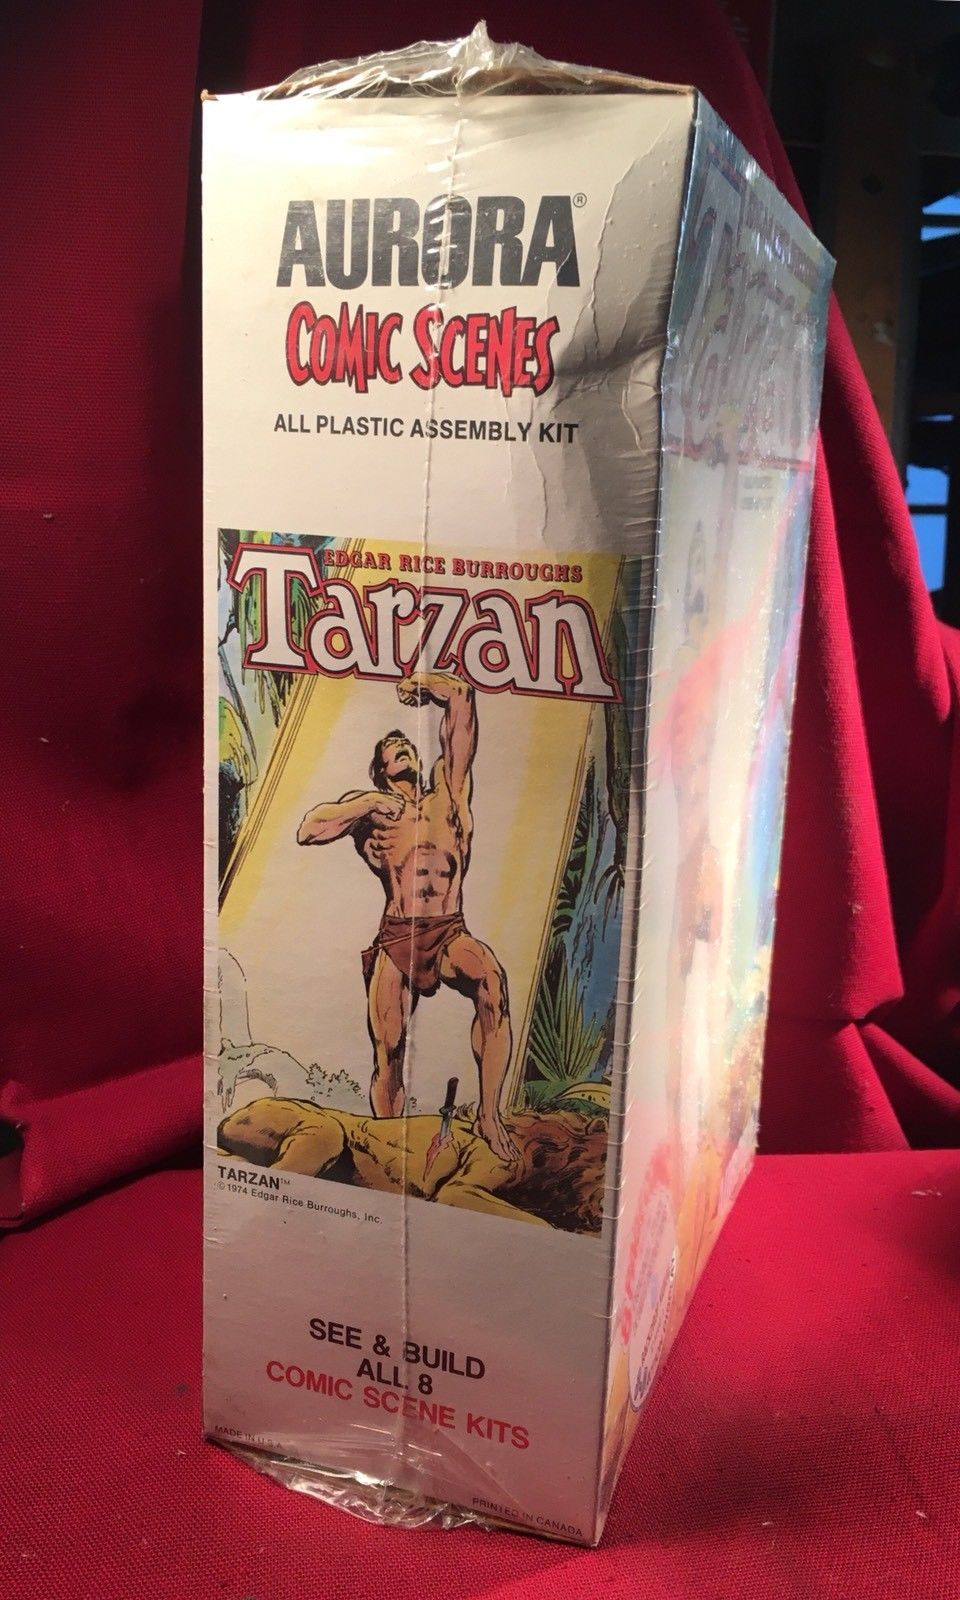 Tarzan Aurora 1974 All Plastic Assembly Kit 1974 Sealed In Box. Comic, Backdrop